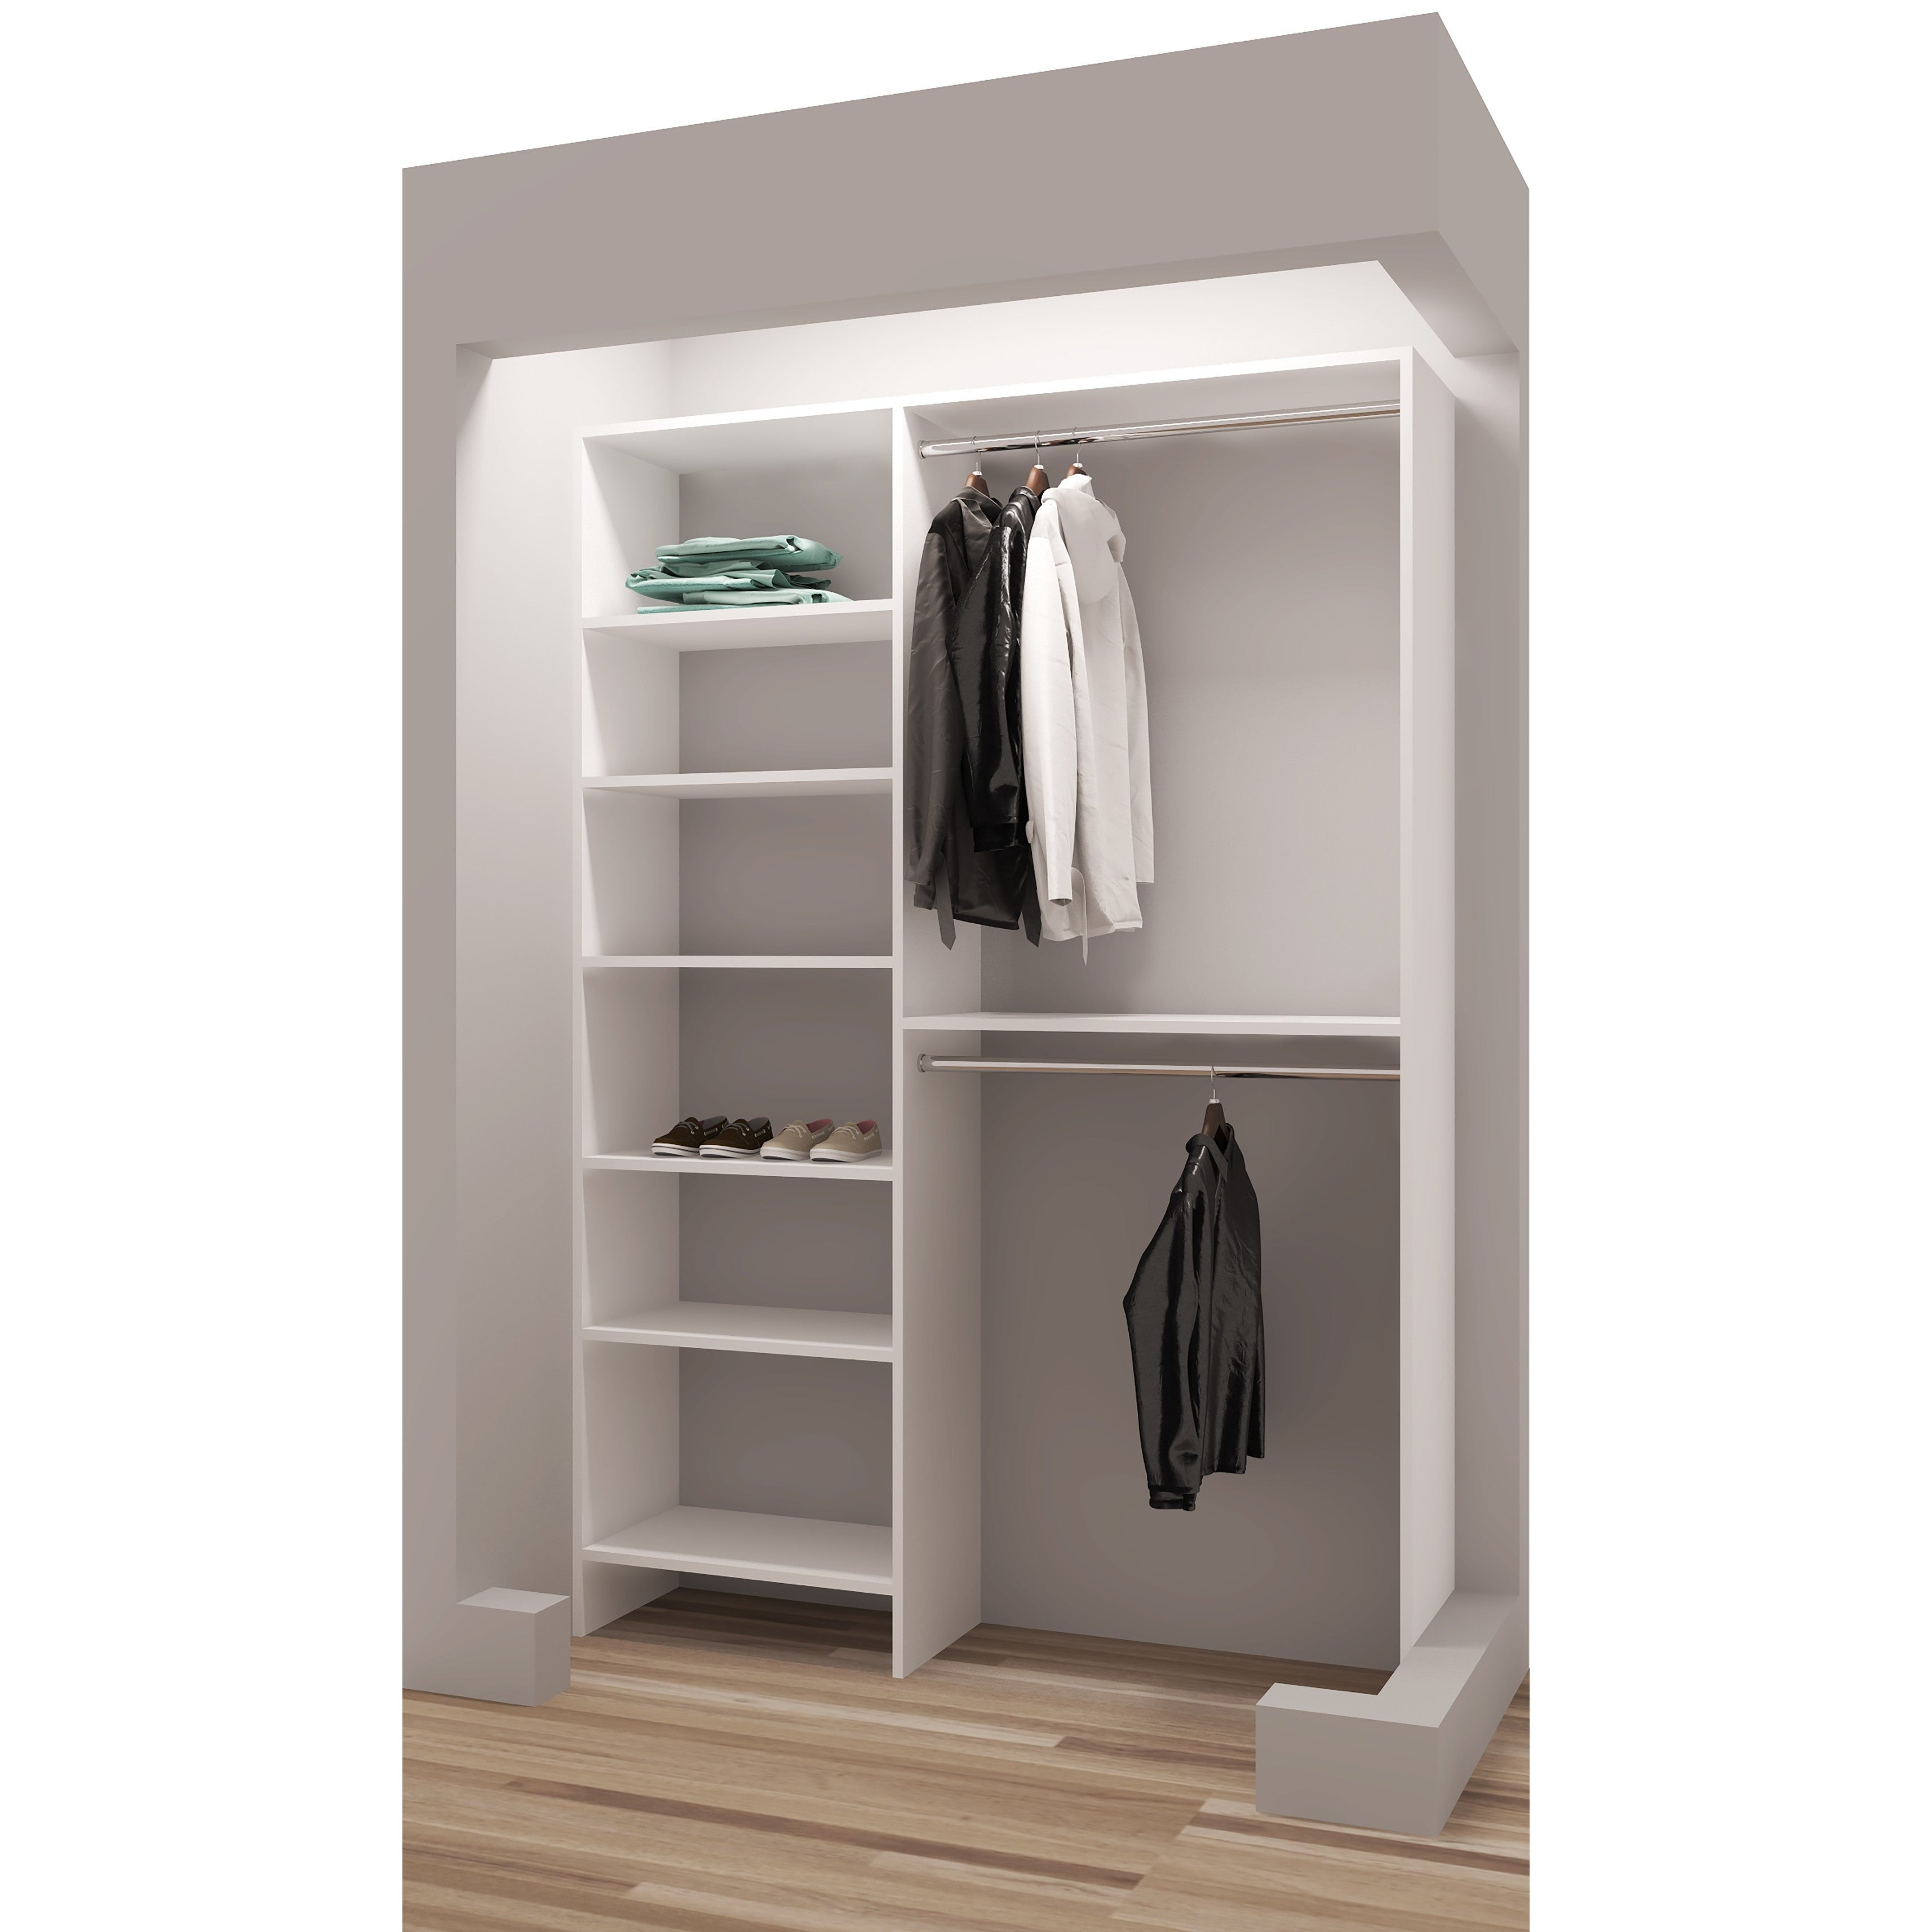 volcano eruption louisiana nobel shipwrecks companies fire prize hawaii organizers toronto chemical hack photos literature of pictures closet full organizer in size images systems beautiful solidwoodclosets april design built and postponed plant report wardrobe jobs